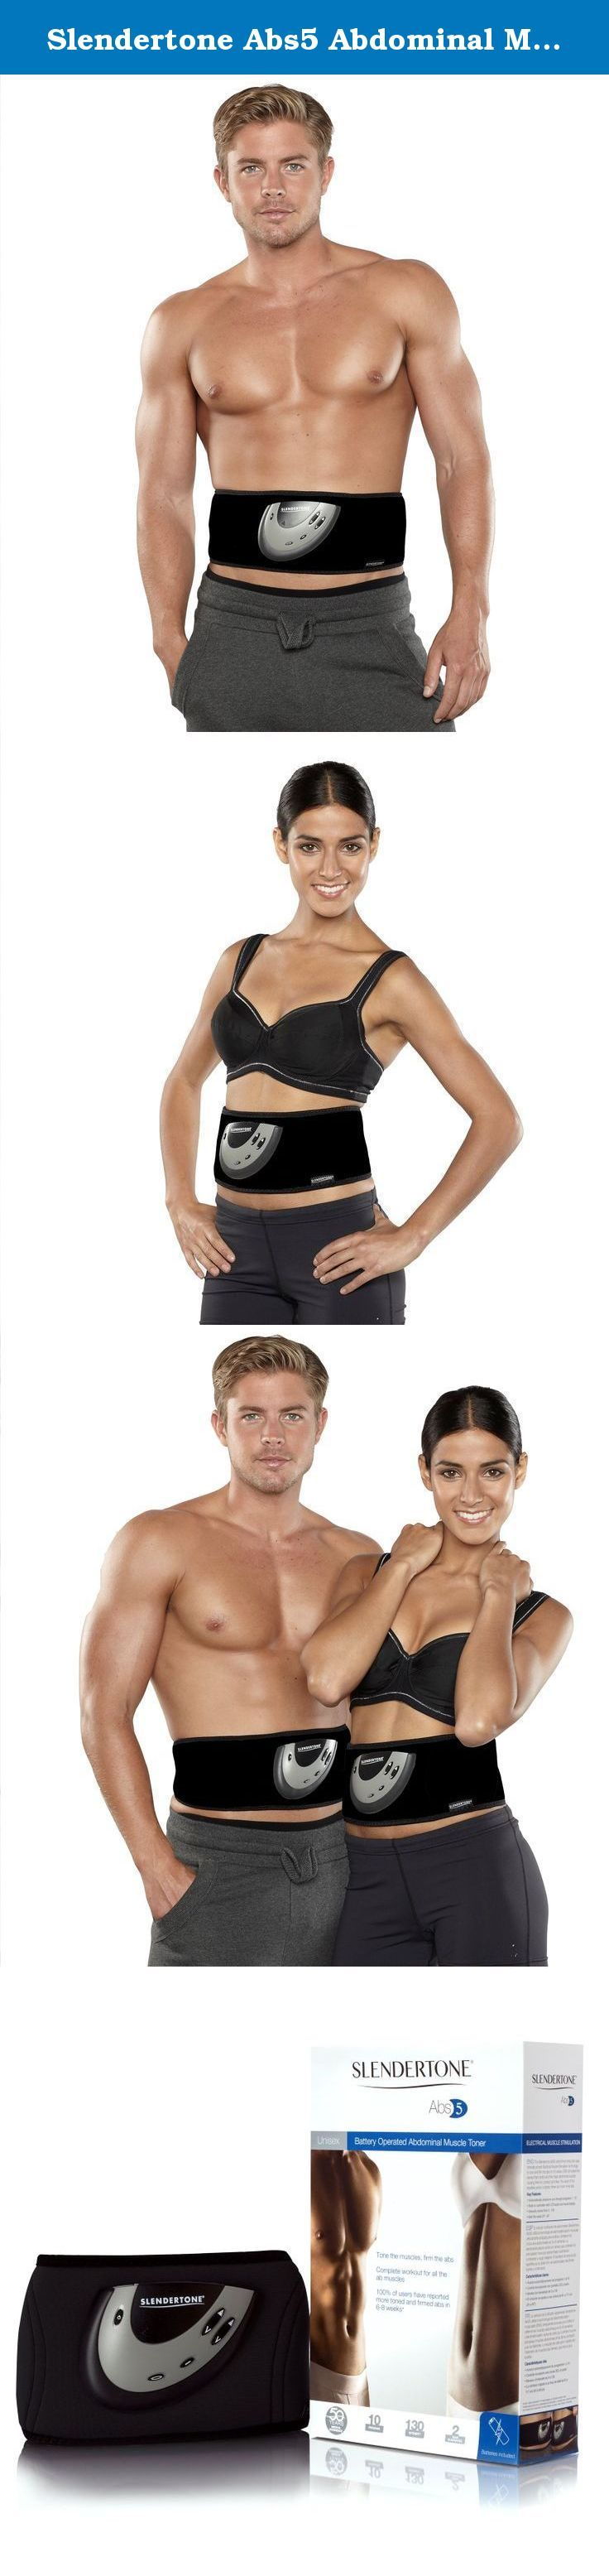 """Slendertone Abs5 Abdominal Muscle Toner - Core Abs Workout Belt - Black. Slendertone Abs5 belt fits waist sizes 24"""" to 46"""". Contents: Slendertone Belt, Control Unit, Travel Pouch, Manual, 3 AAA batteries, 2 Year Limited Warranty, 3 Adhesive Gel Pads."""